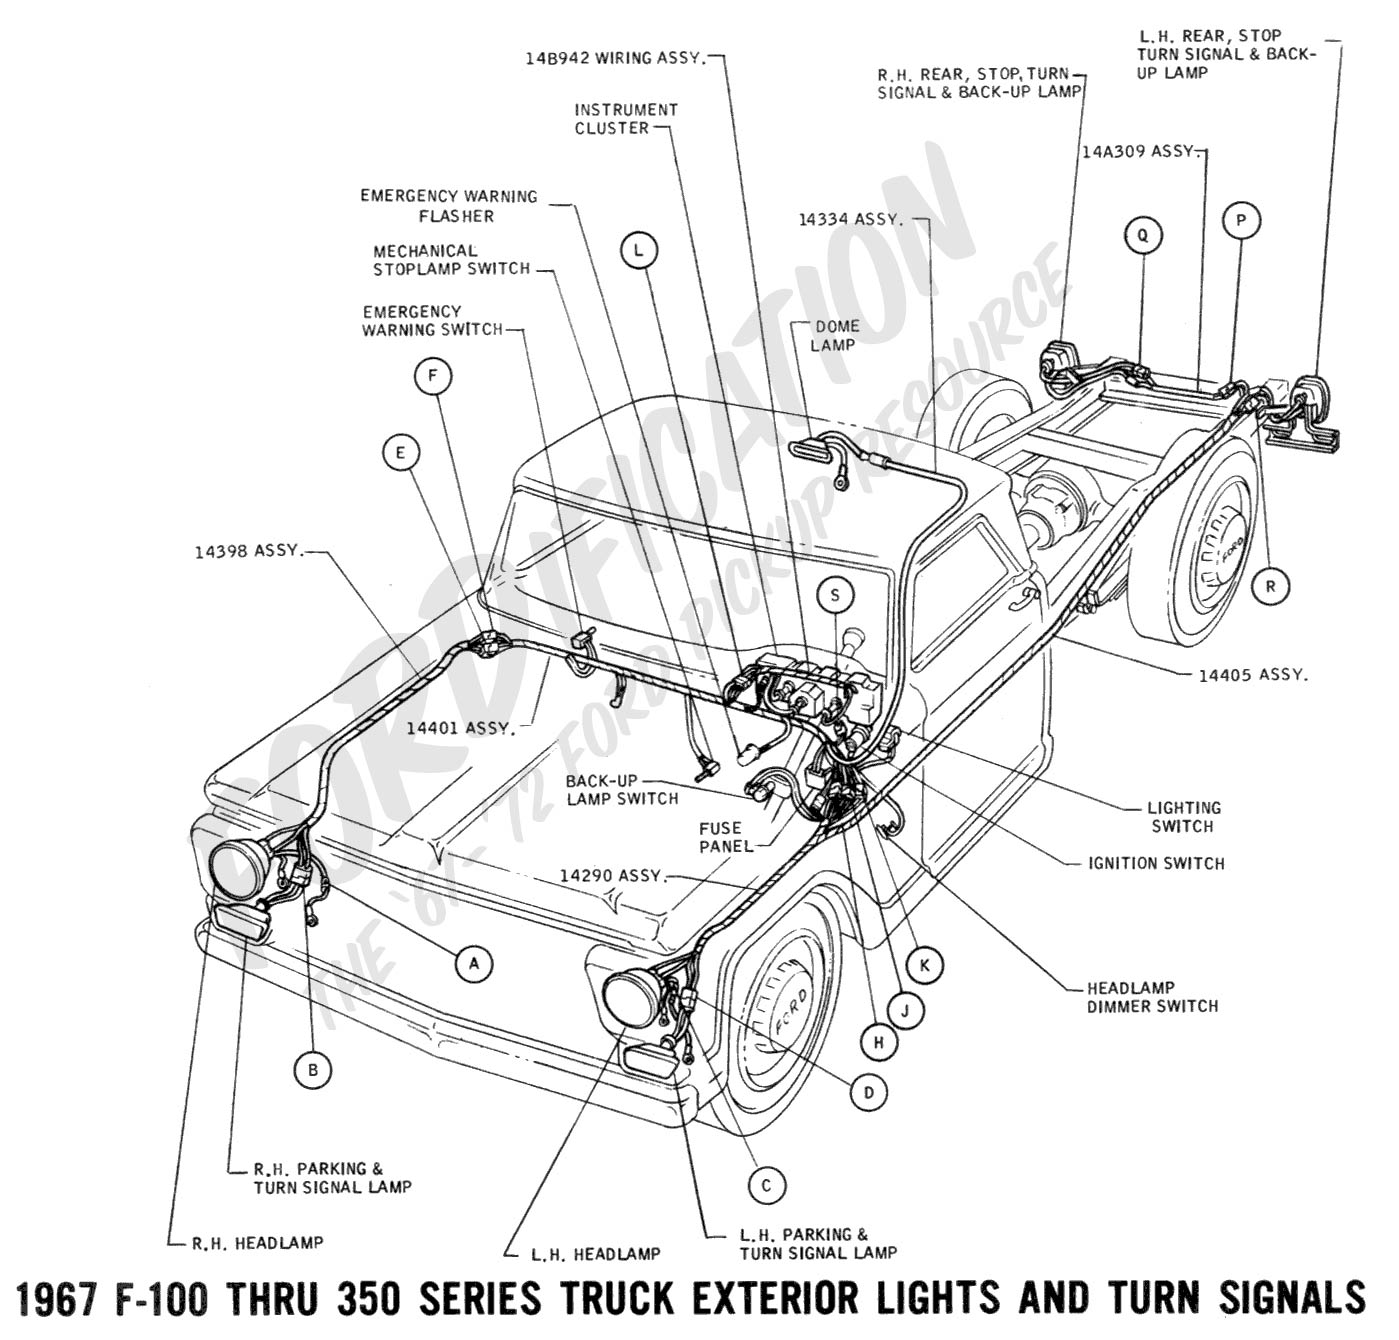 1967 Ford F100 Turn Signal Wiring Diagram Detailed Schematic Diagrams Panel Truck Technical Drawings And Schematics Section H Mustang Instrument